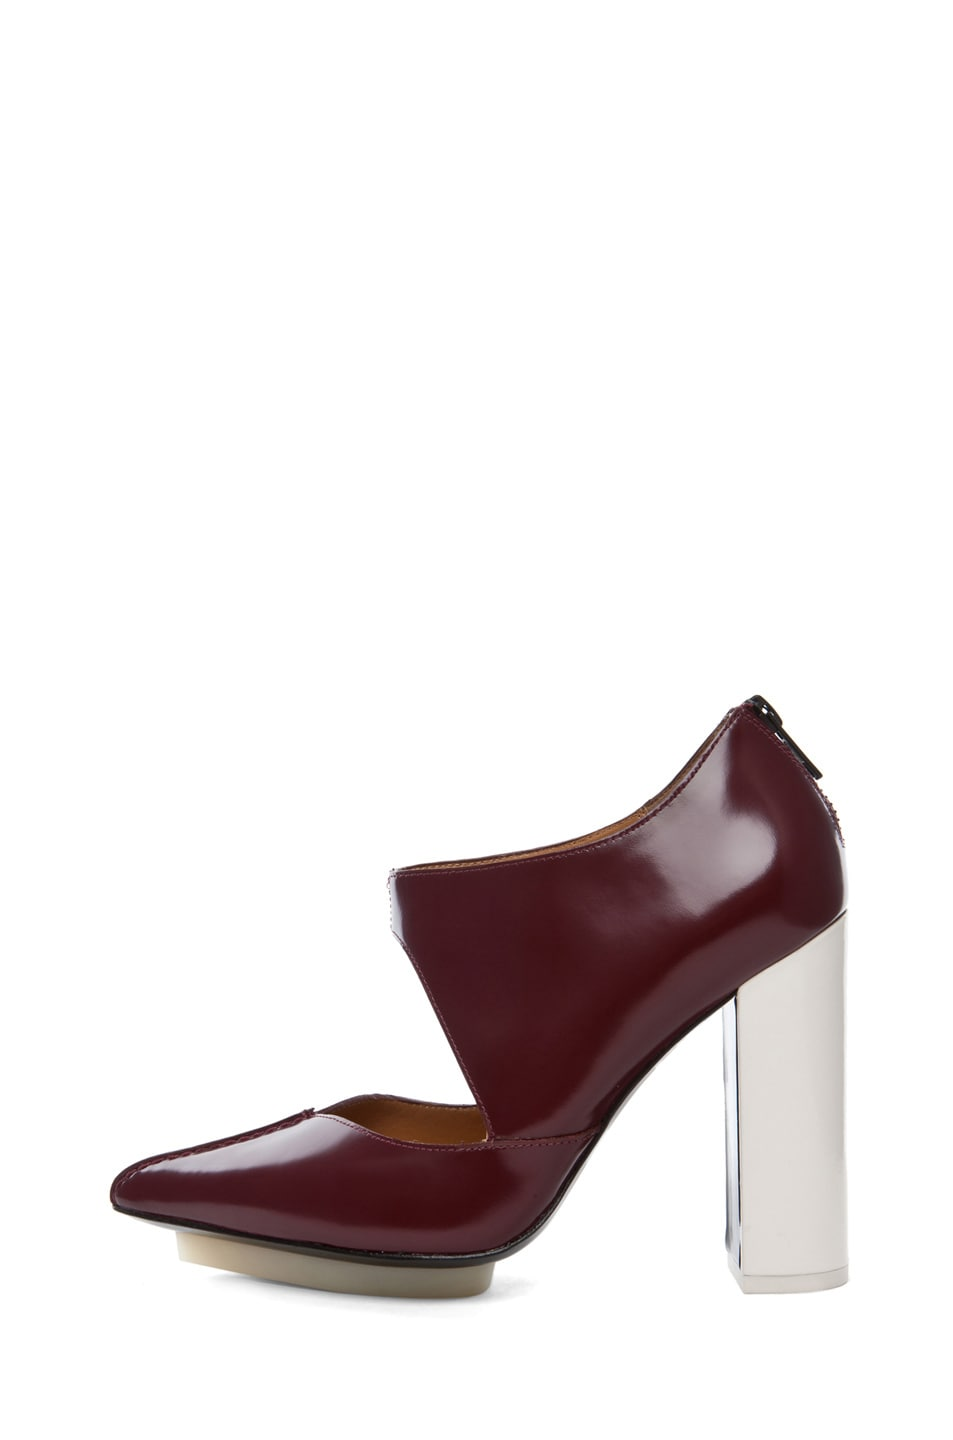 Image 1 of 3.1 phillip lim Kadie Cut Out Bootie in Prune